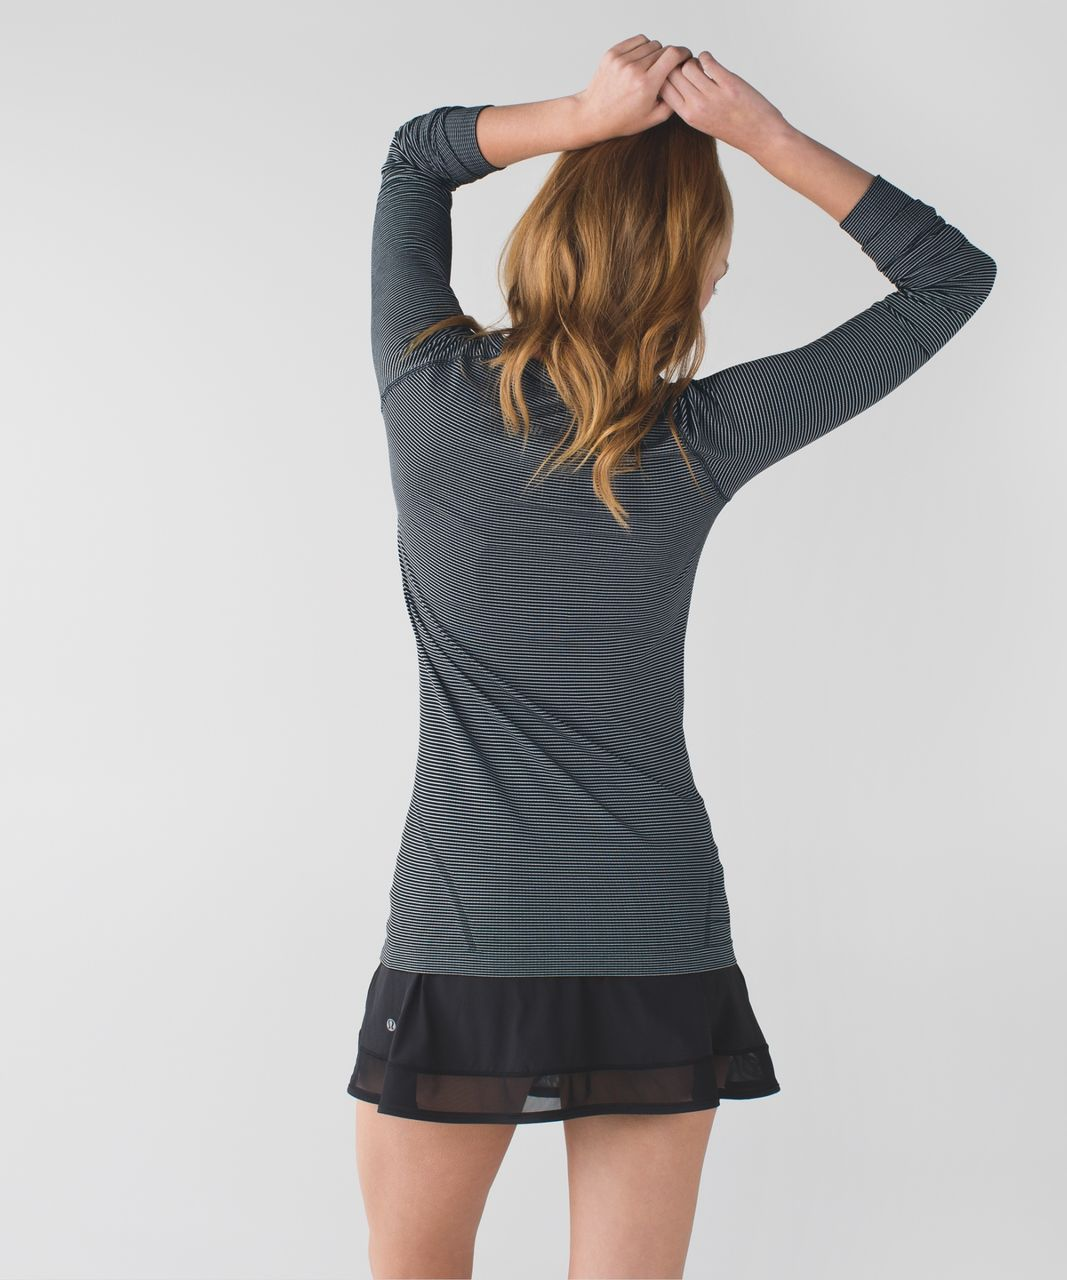 Lululemon Swiftly Tech Long Sleeve Crew - Tempo Stripe Black White